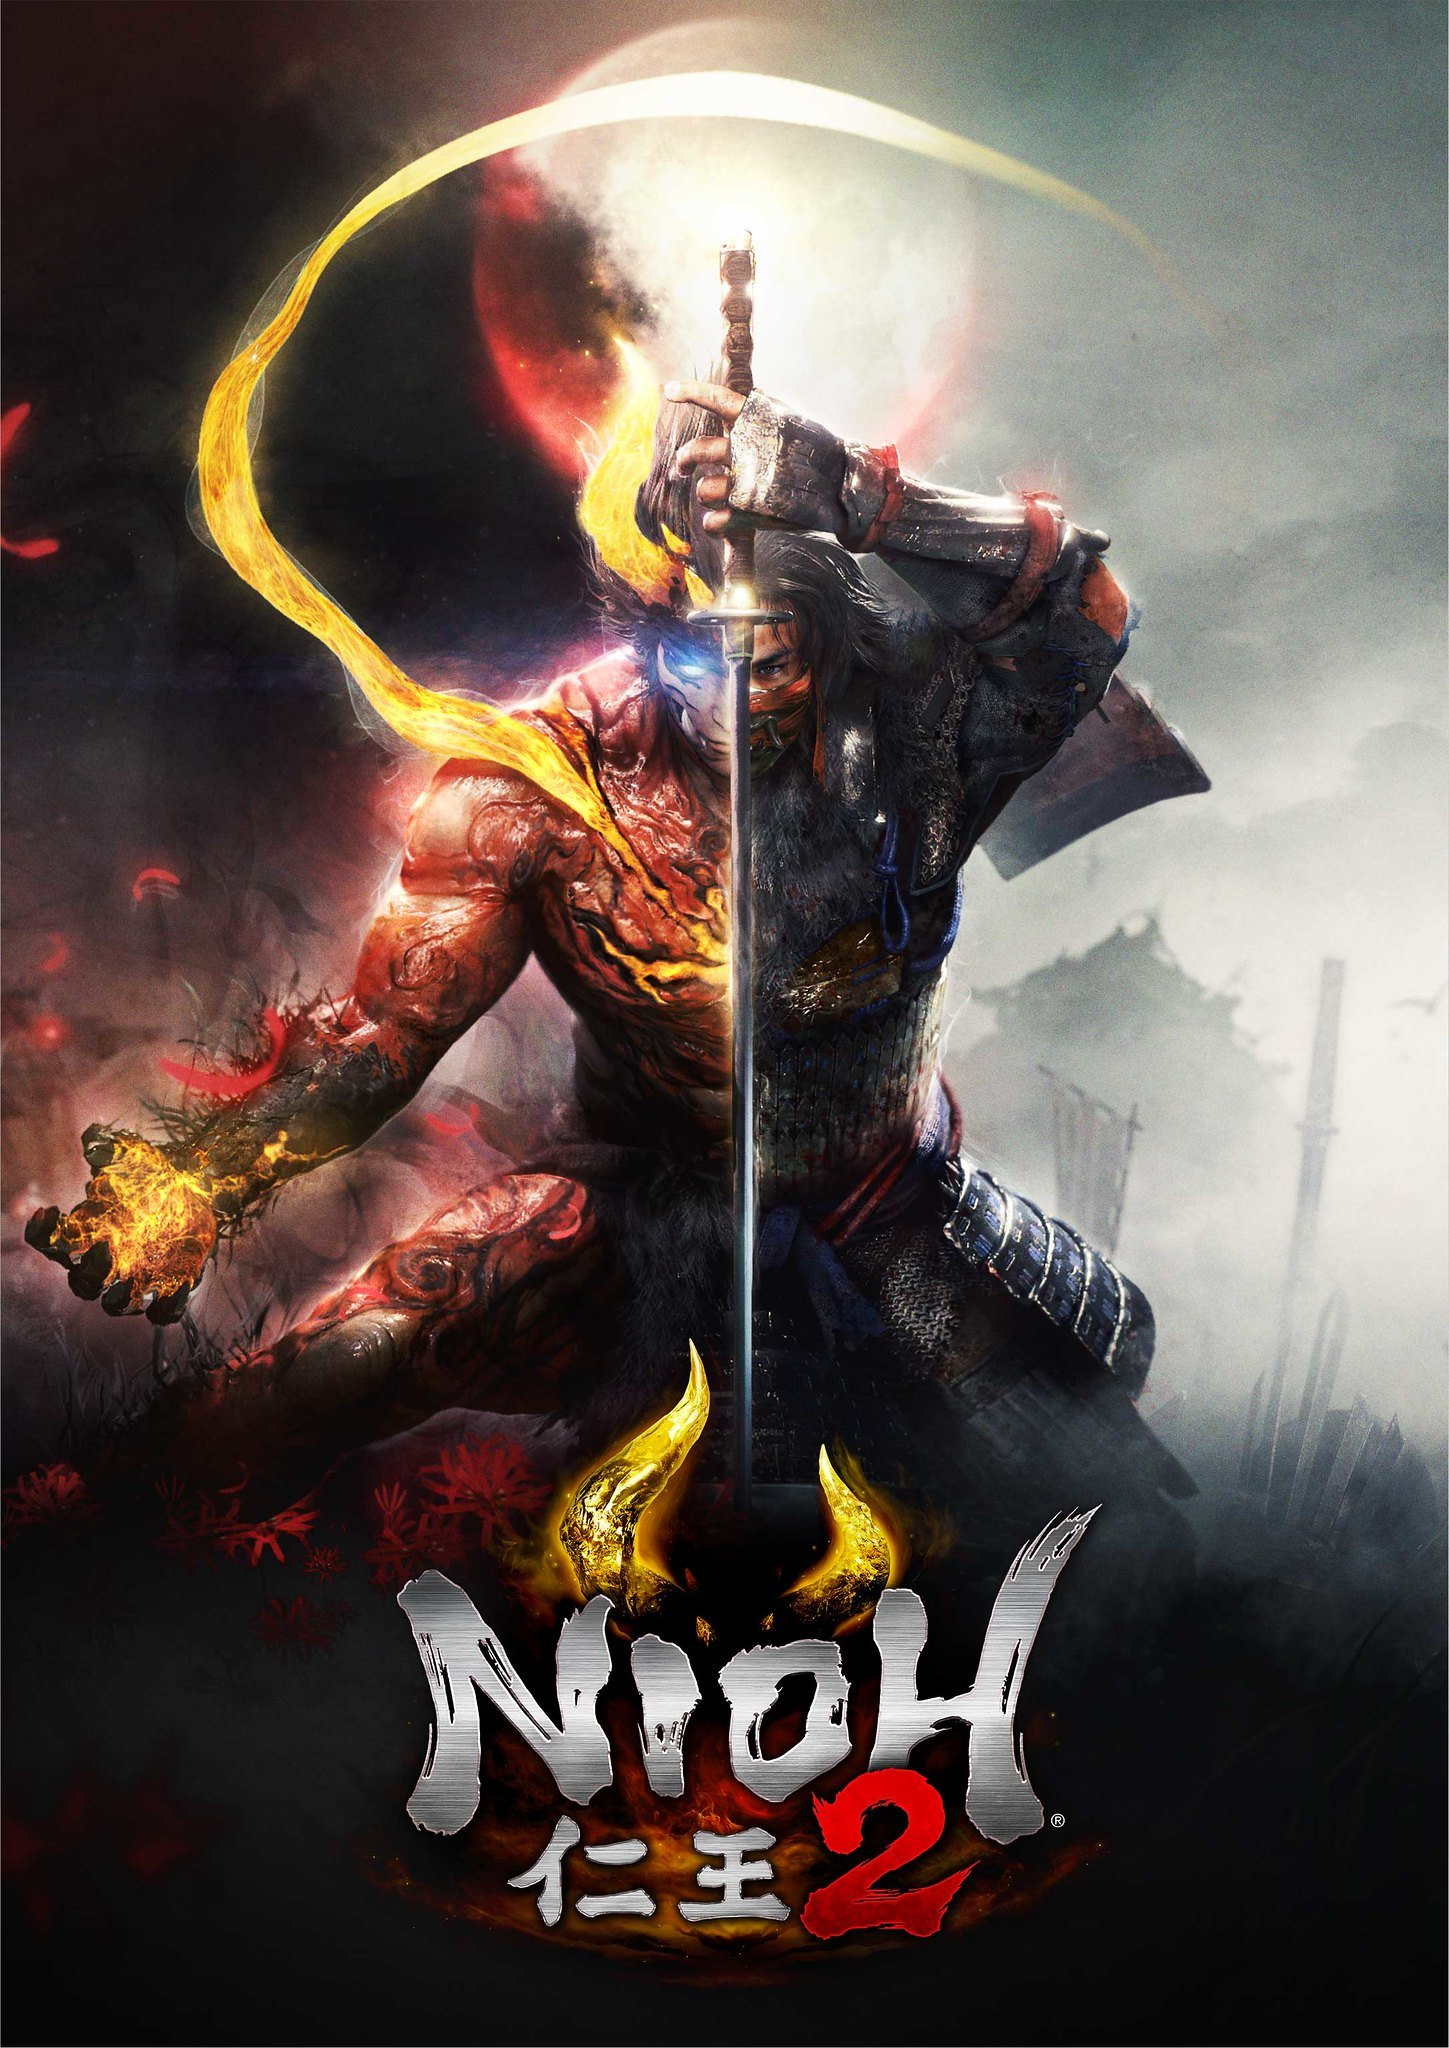 The Nioh 2 key art depicts a half-blood samura © Team Ninja